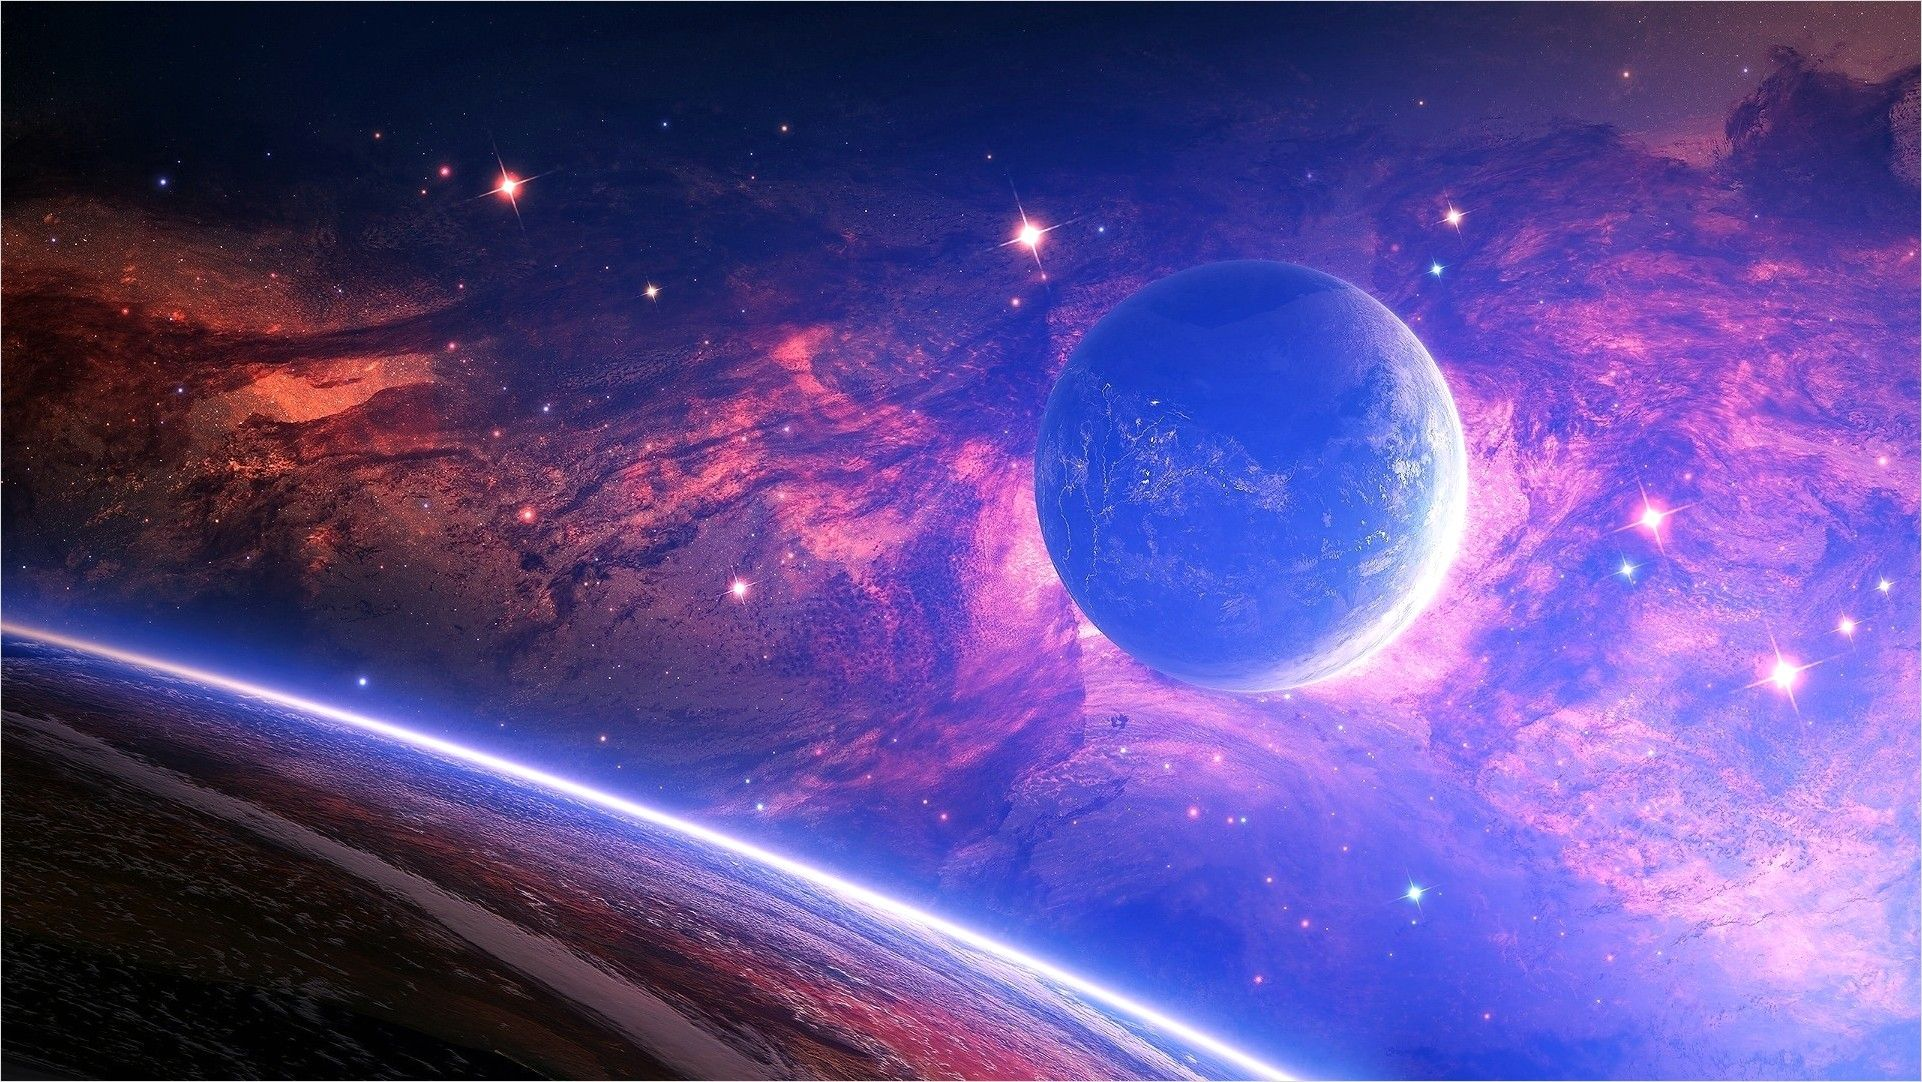 1080 X 1080 Space Wallpapers 4k en 2020 (con imágenes